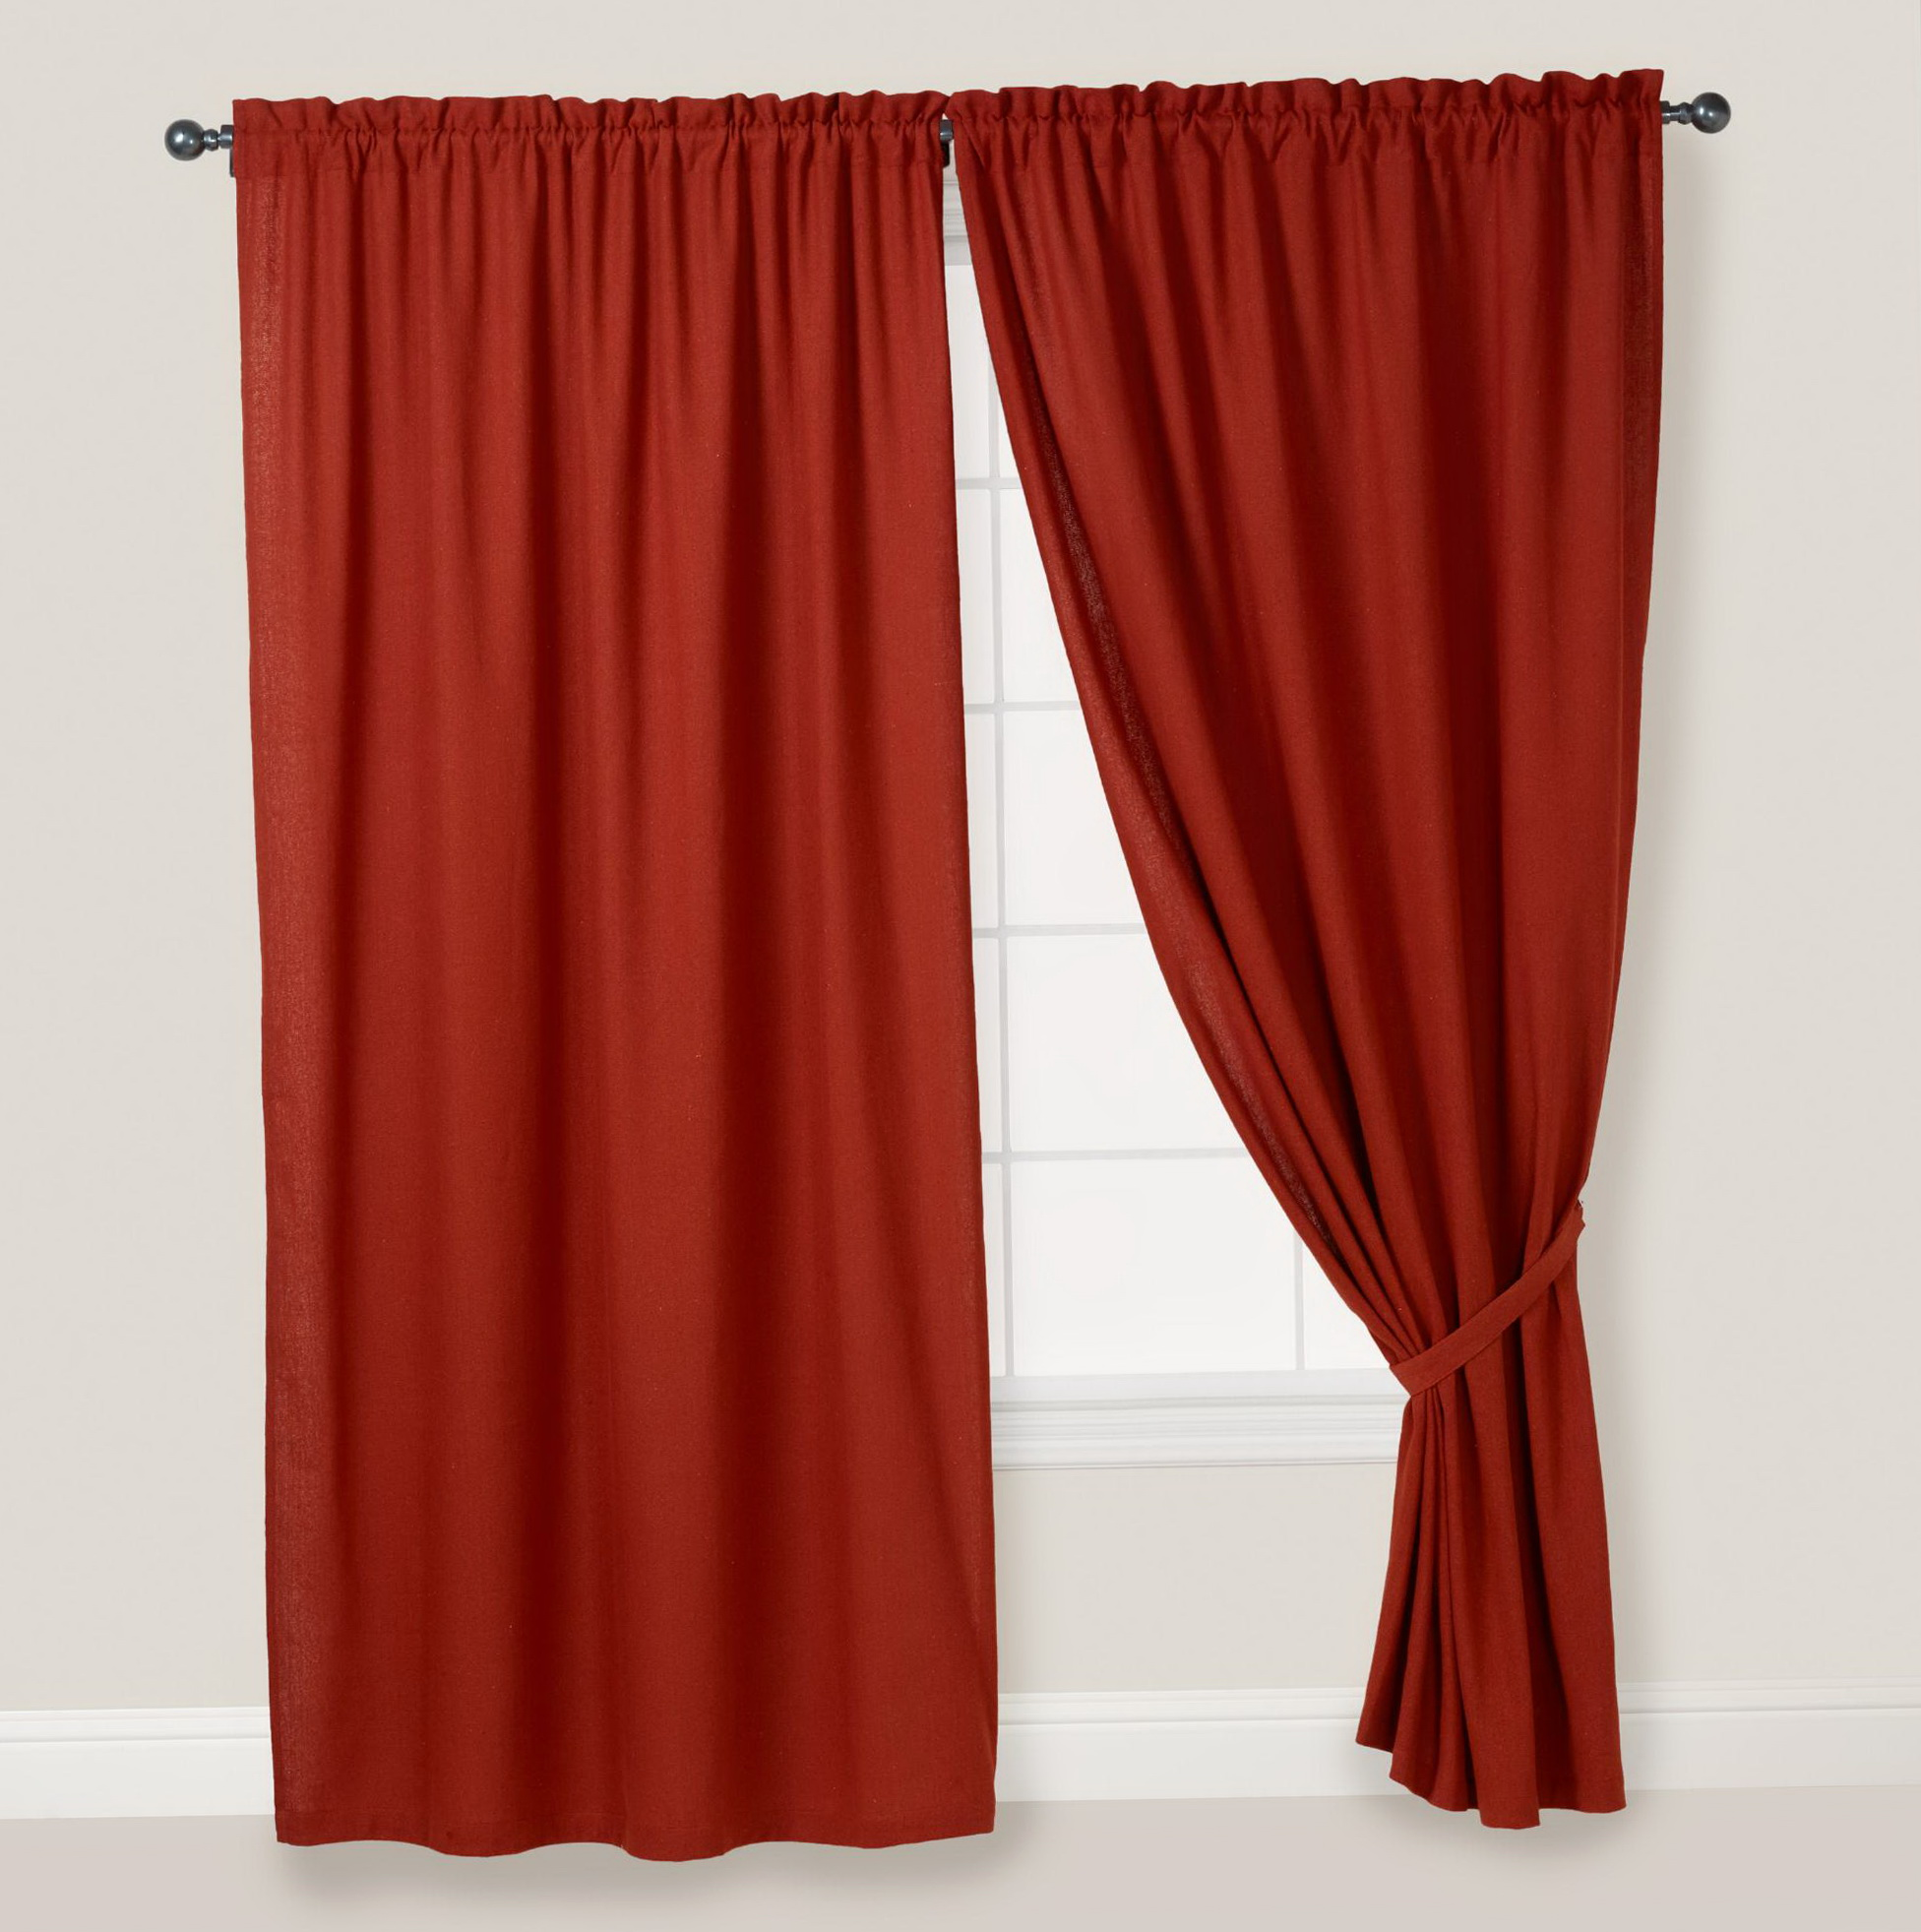 Curtains For Sale In Kenya